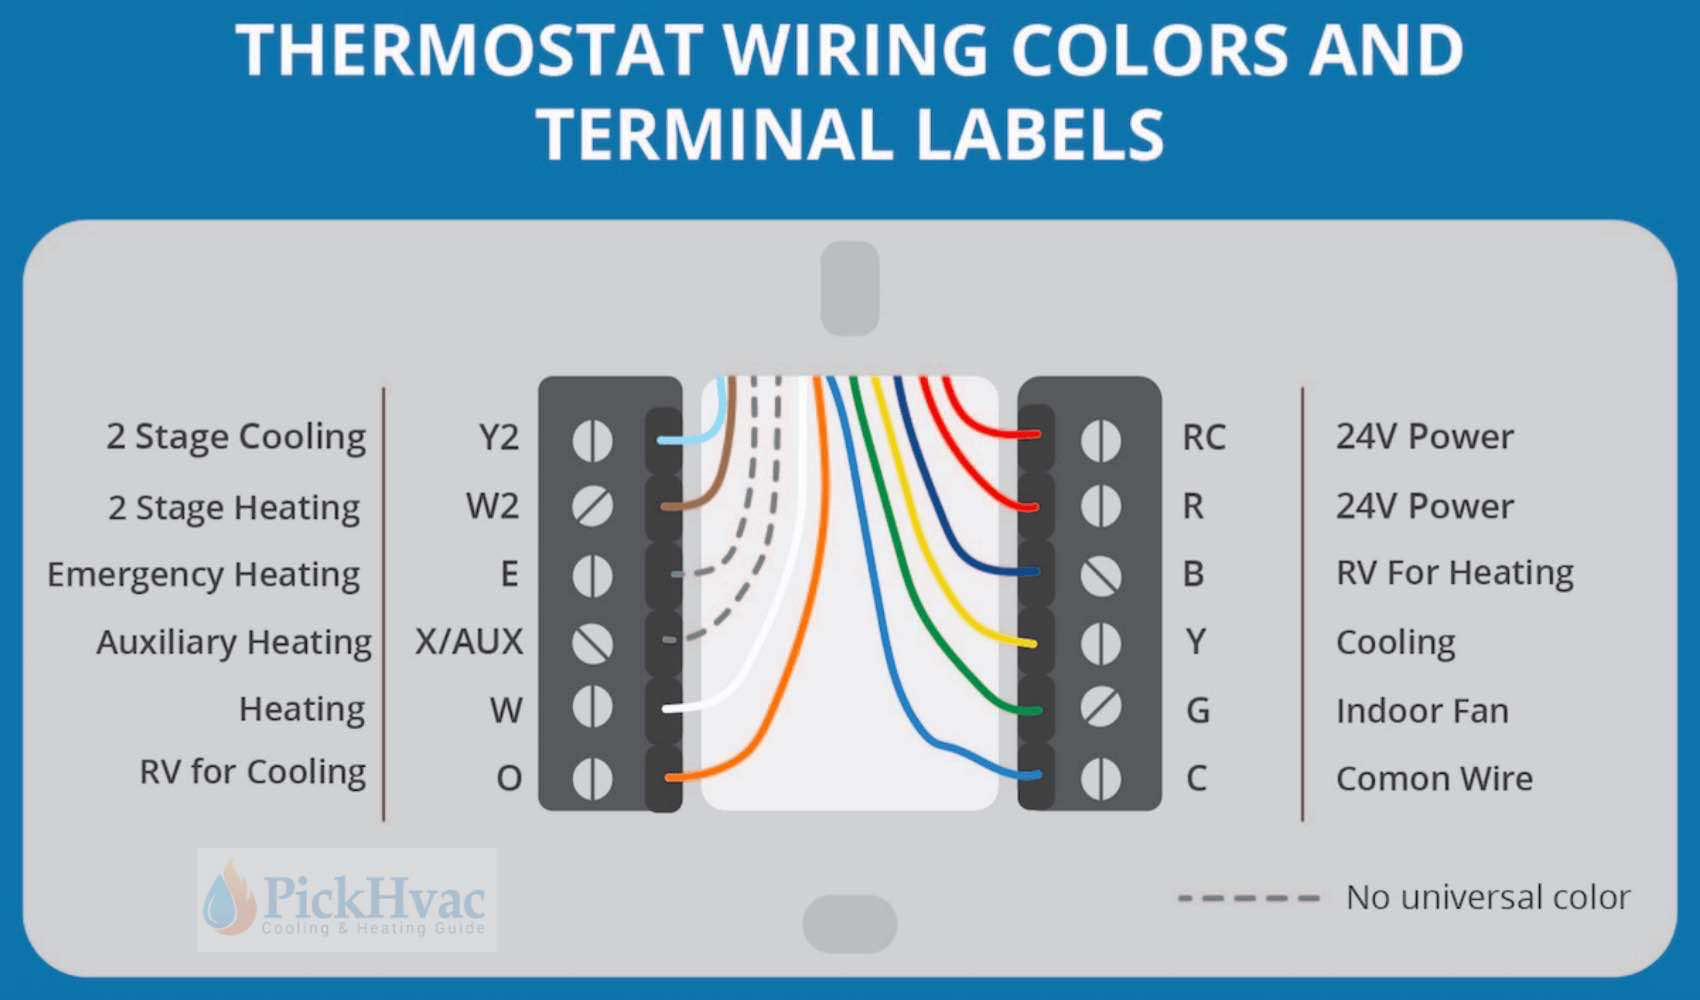 In-Depth Thermostat Wiring Guide For Homeowners - Nest Wiring Diagram For Heat Pump Two Stage Heat One Stage Cooling